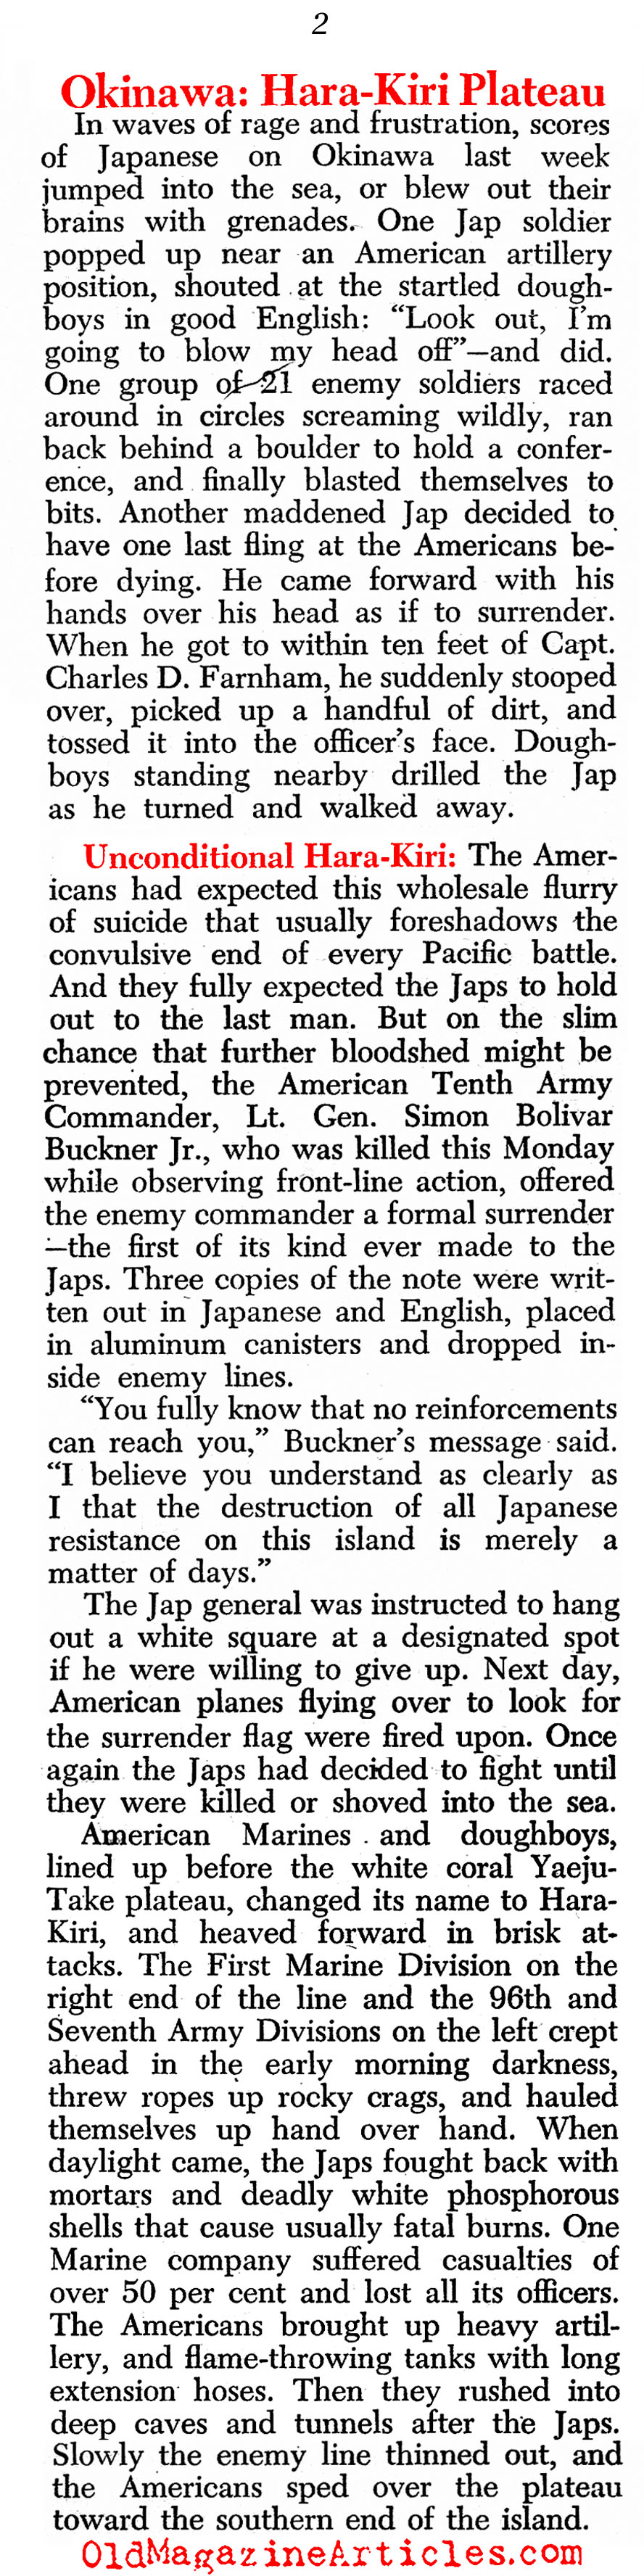 Their Kamikaze Defense (Newsweek Magazine, 1945)